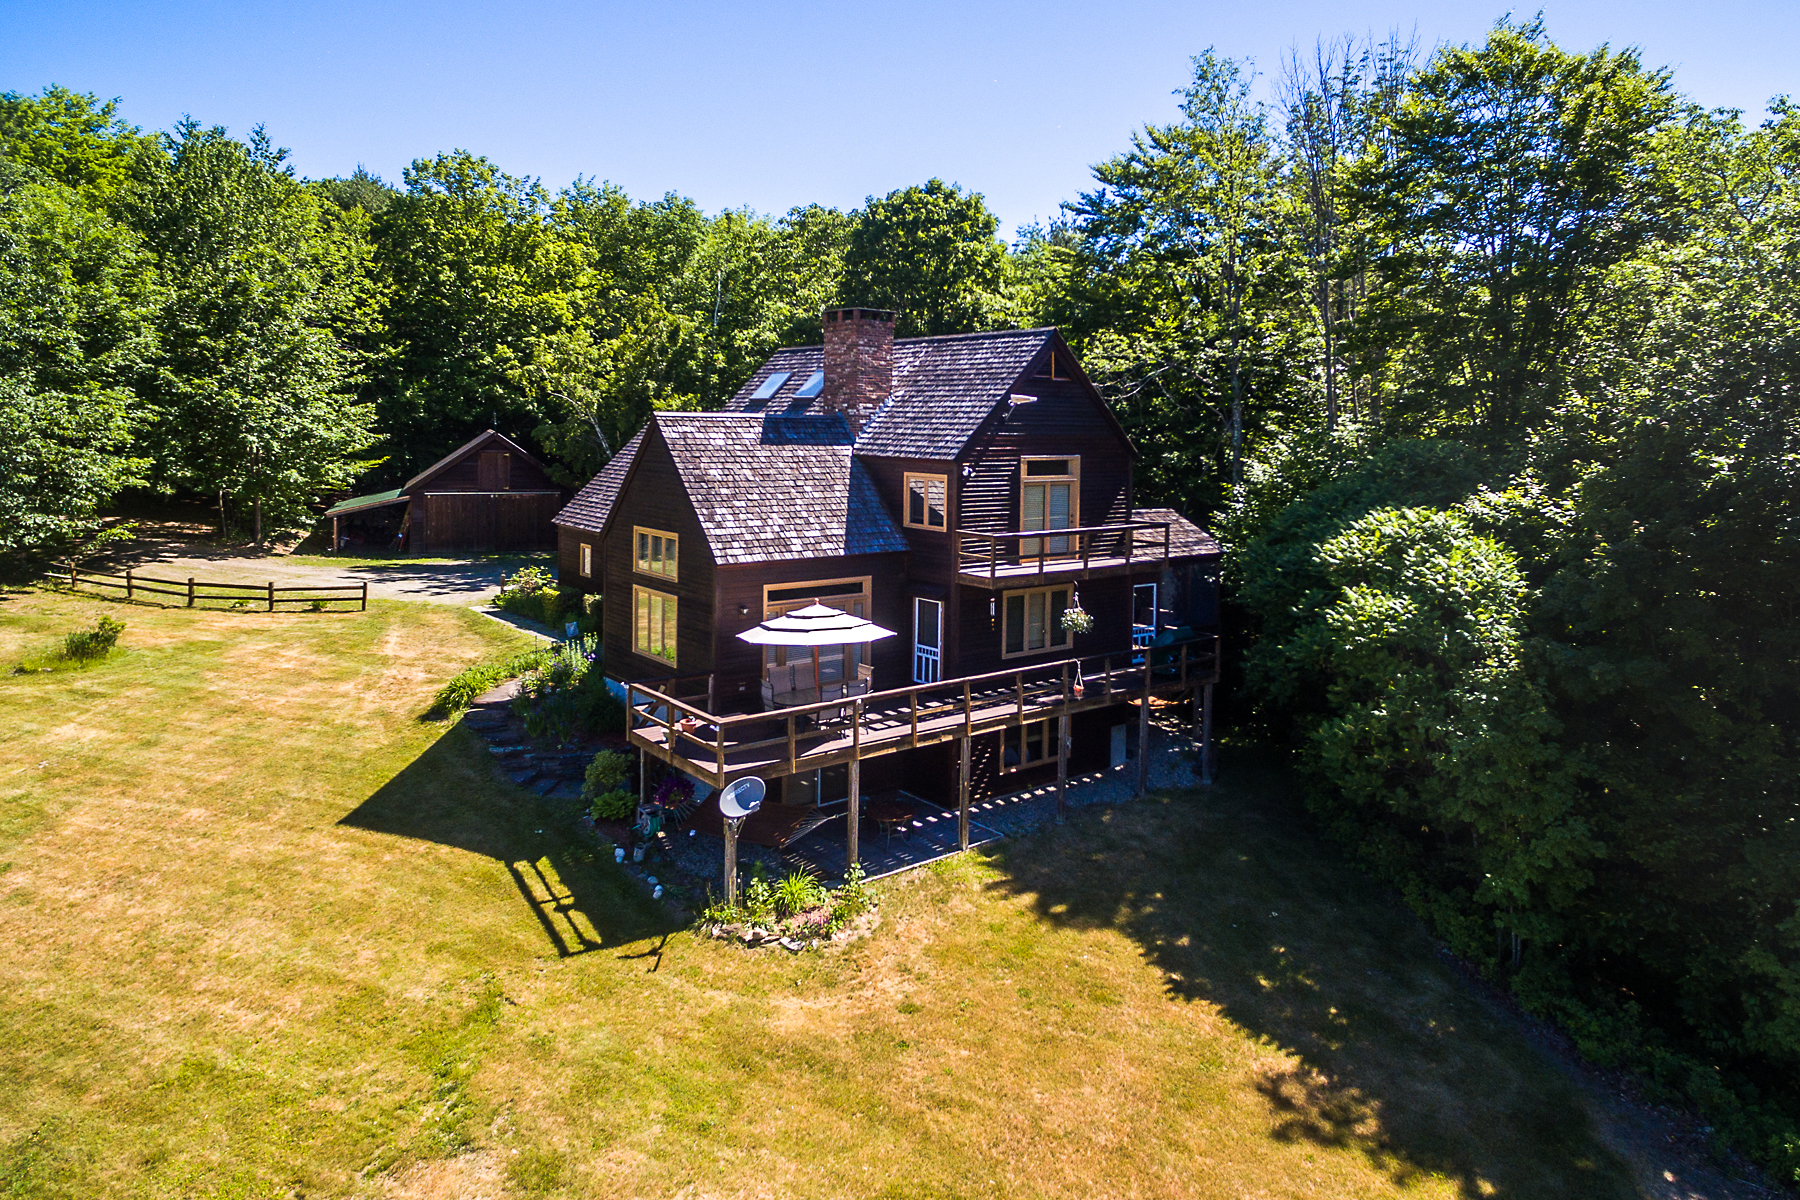 Single Family Homes for Sale at Spacious Home on 100 Acres 322 Stone Hill Farm Road Weathersfield, Vermont 05151 United States